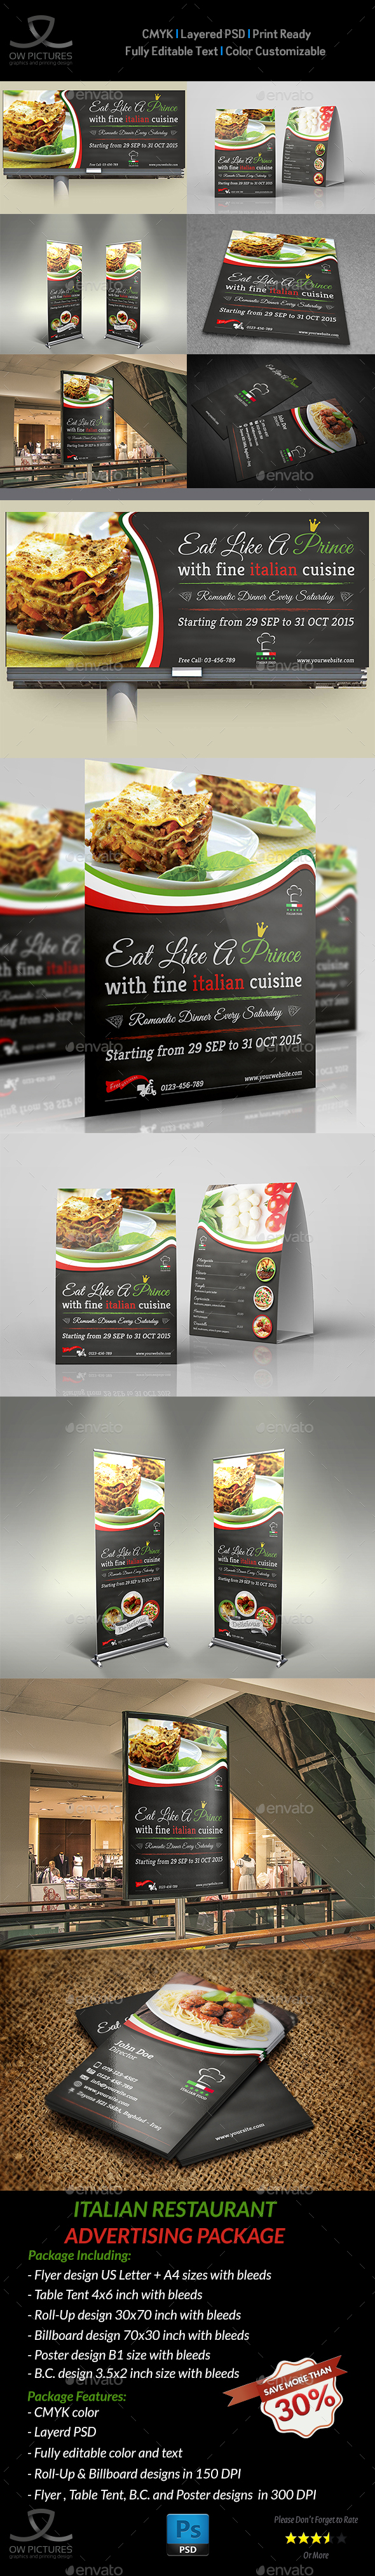 Italian Restaurant Advertising Bundle - Signage Print Templates